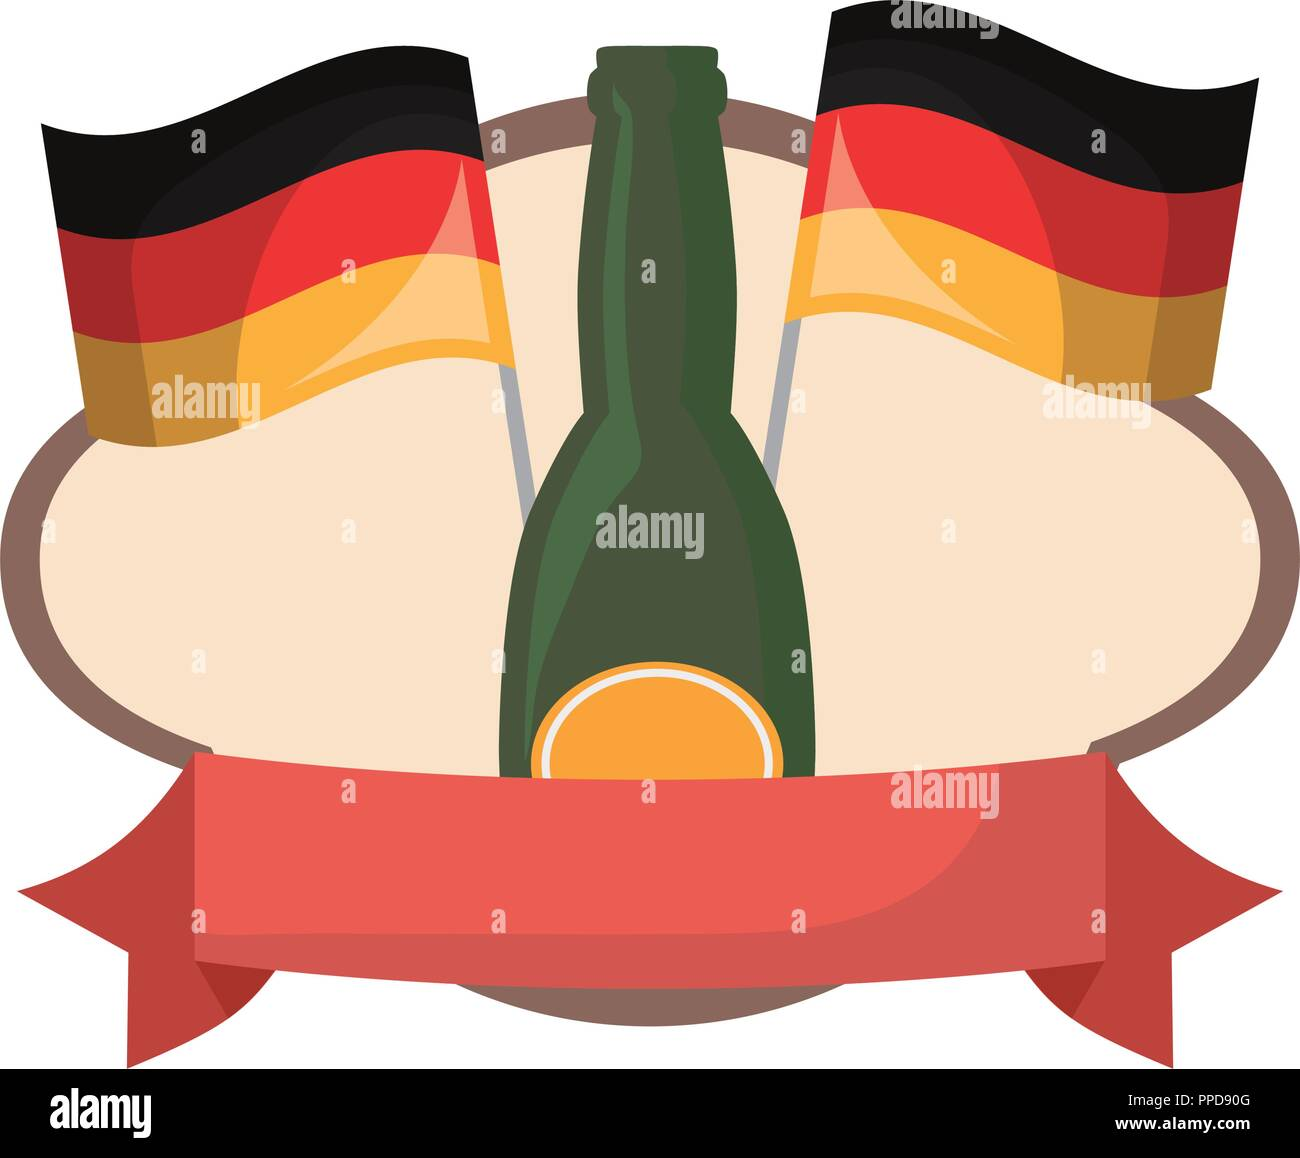 oktoberfest beer bottles and germany flags emblem vector illustration - Stock Image